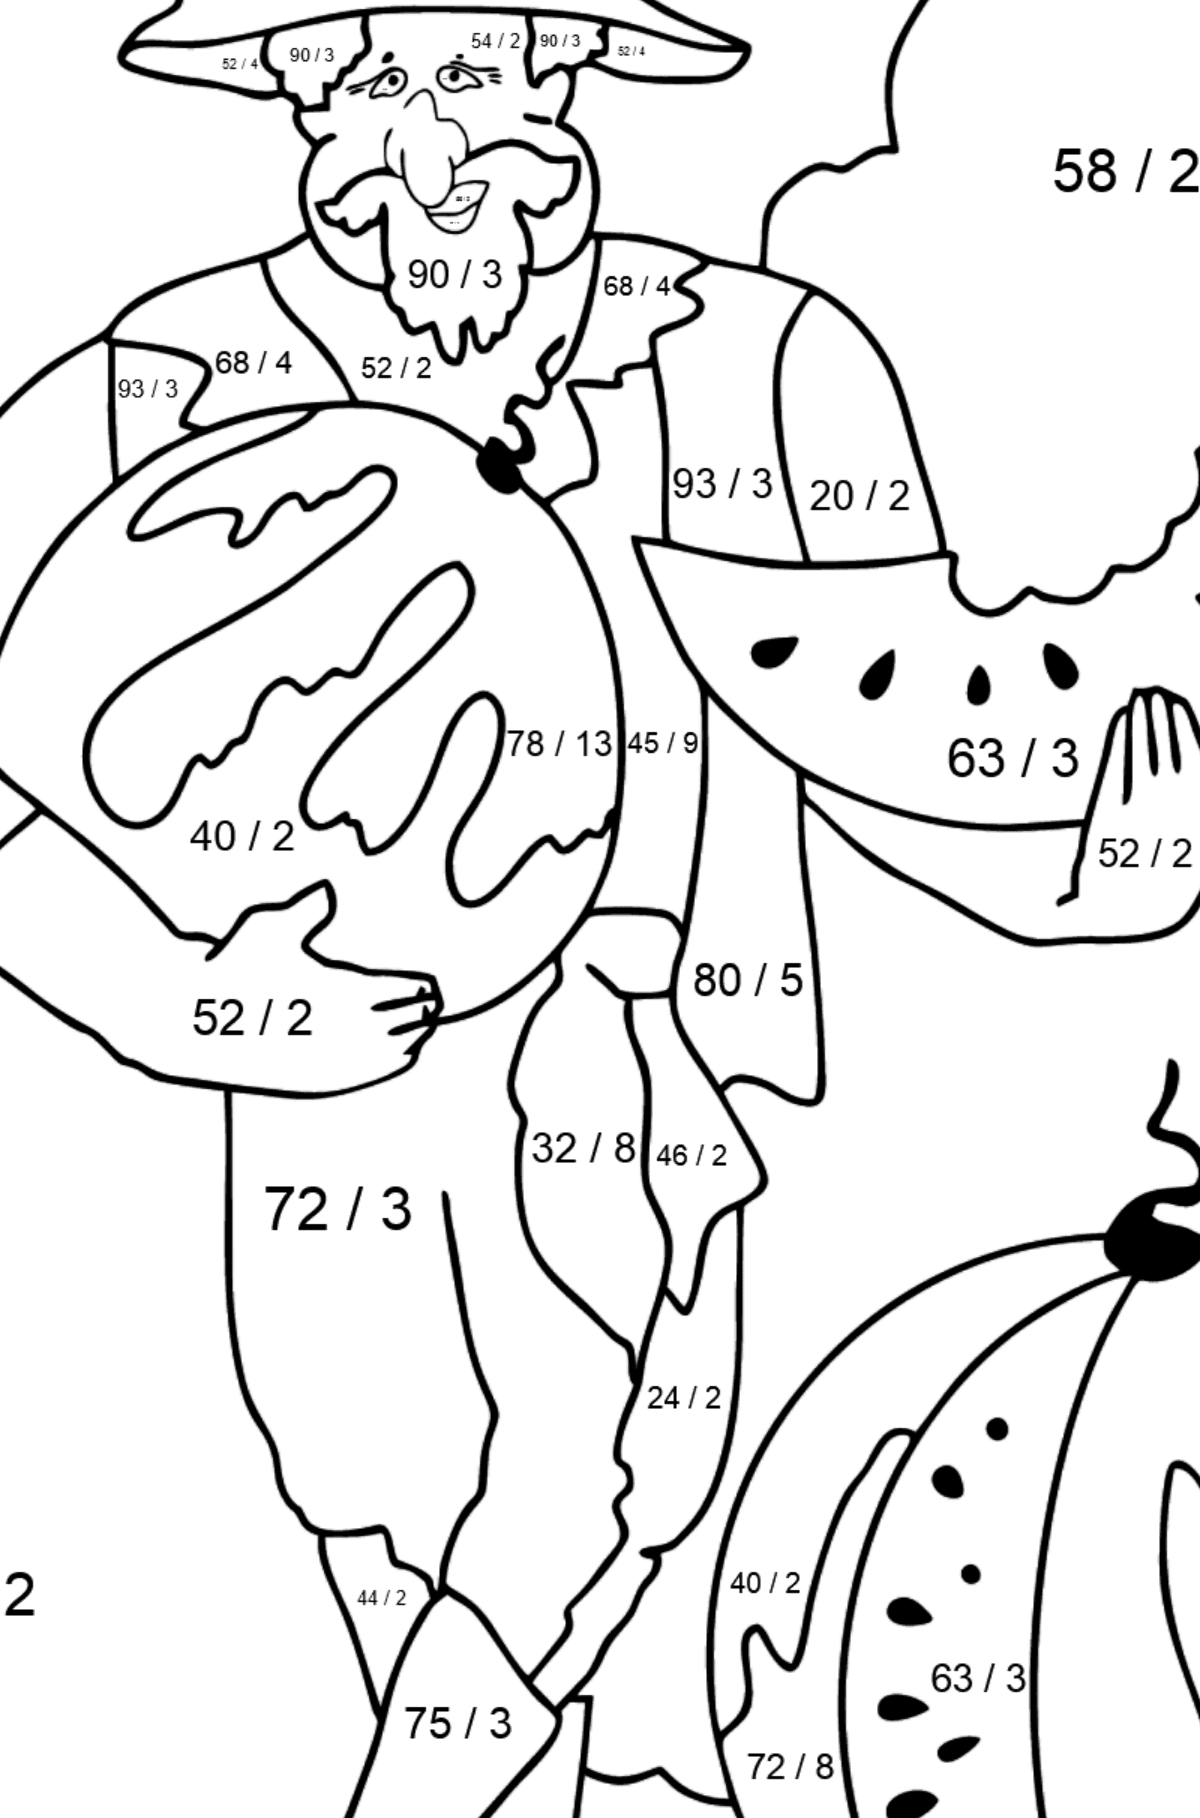 Coloring Page - A Pirate is Sharing a Ripe Watermelon - Math Coloring - Division for Kids